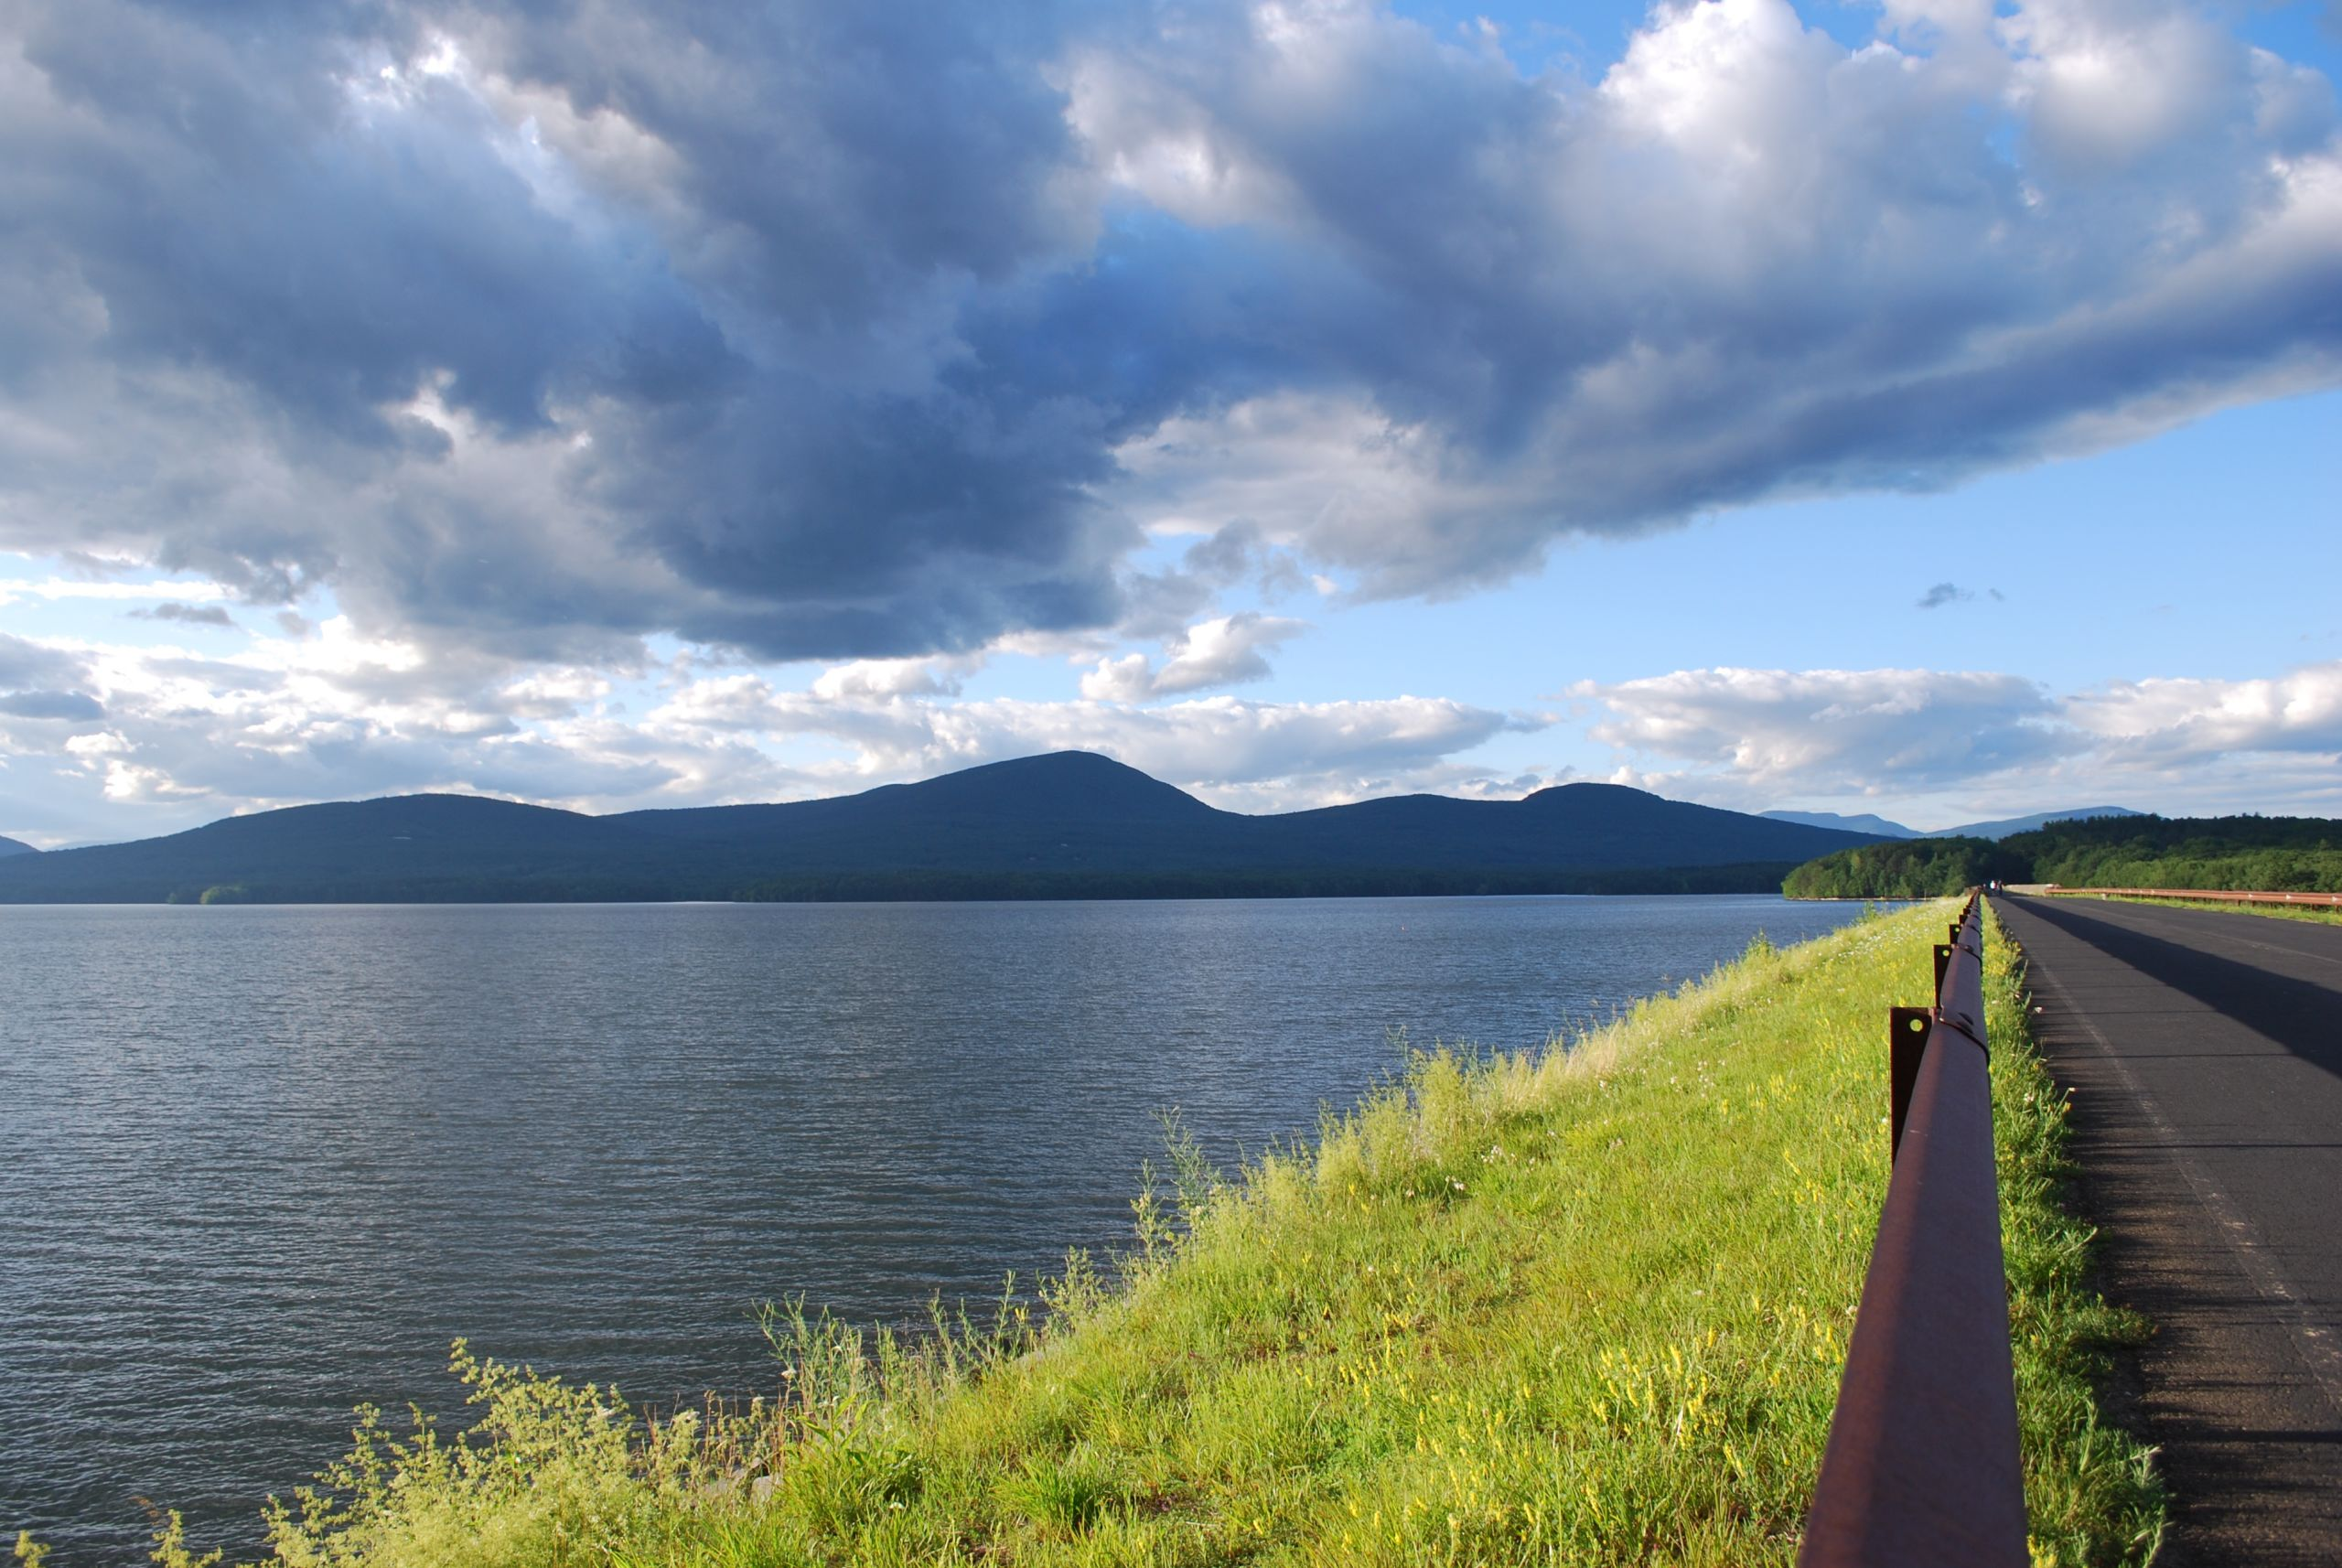 Our jewel! The magnificent Ashokan Reservoir